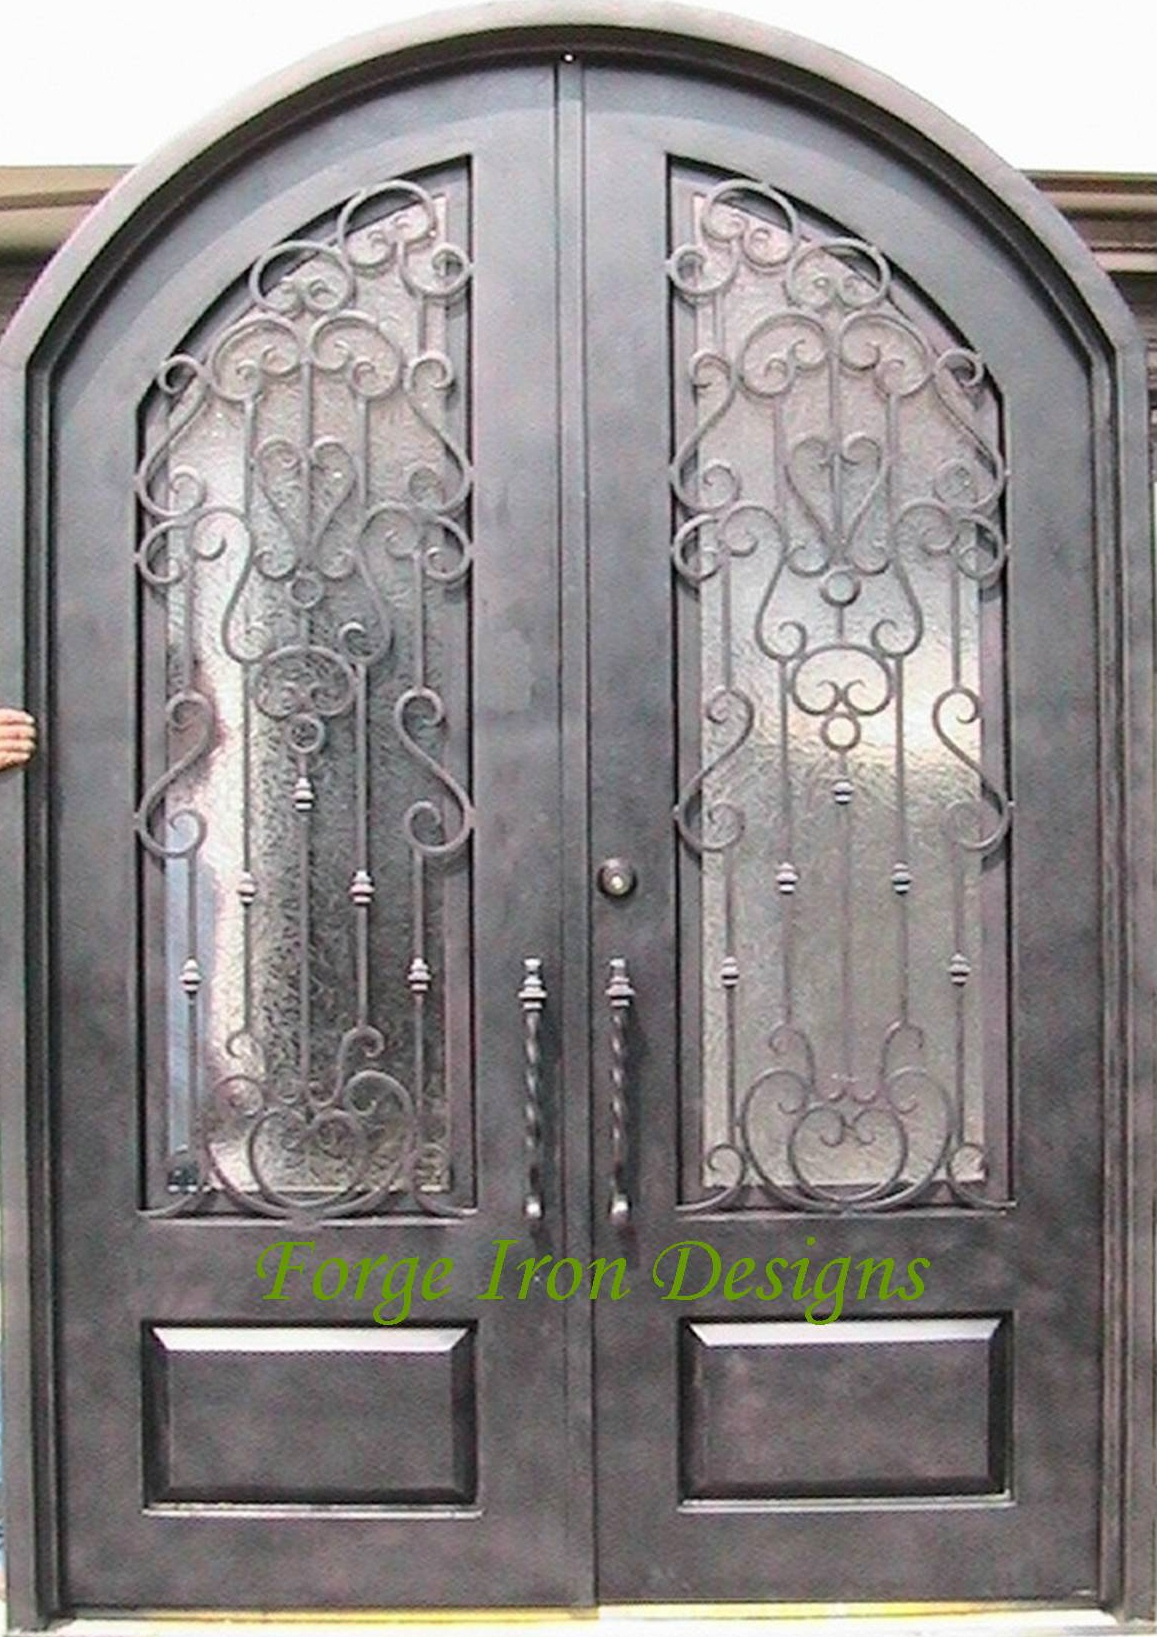 1637 #647238 Wrought Iron Doors Wine Cellar Doors Forge Iron Products AAW Wood  pic Wood Wrought Iron Doors 43111157